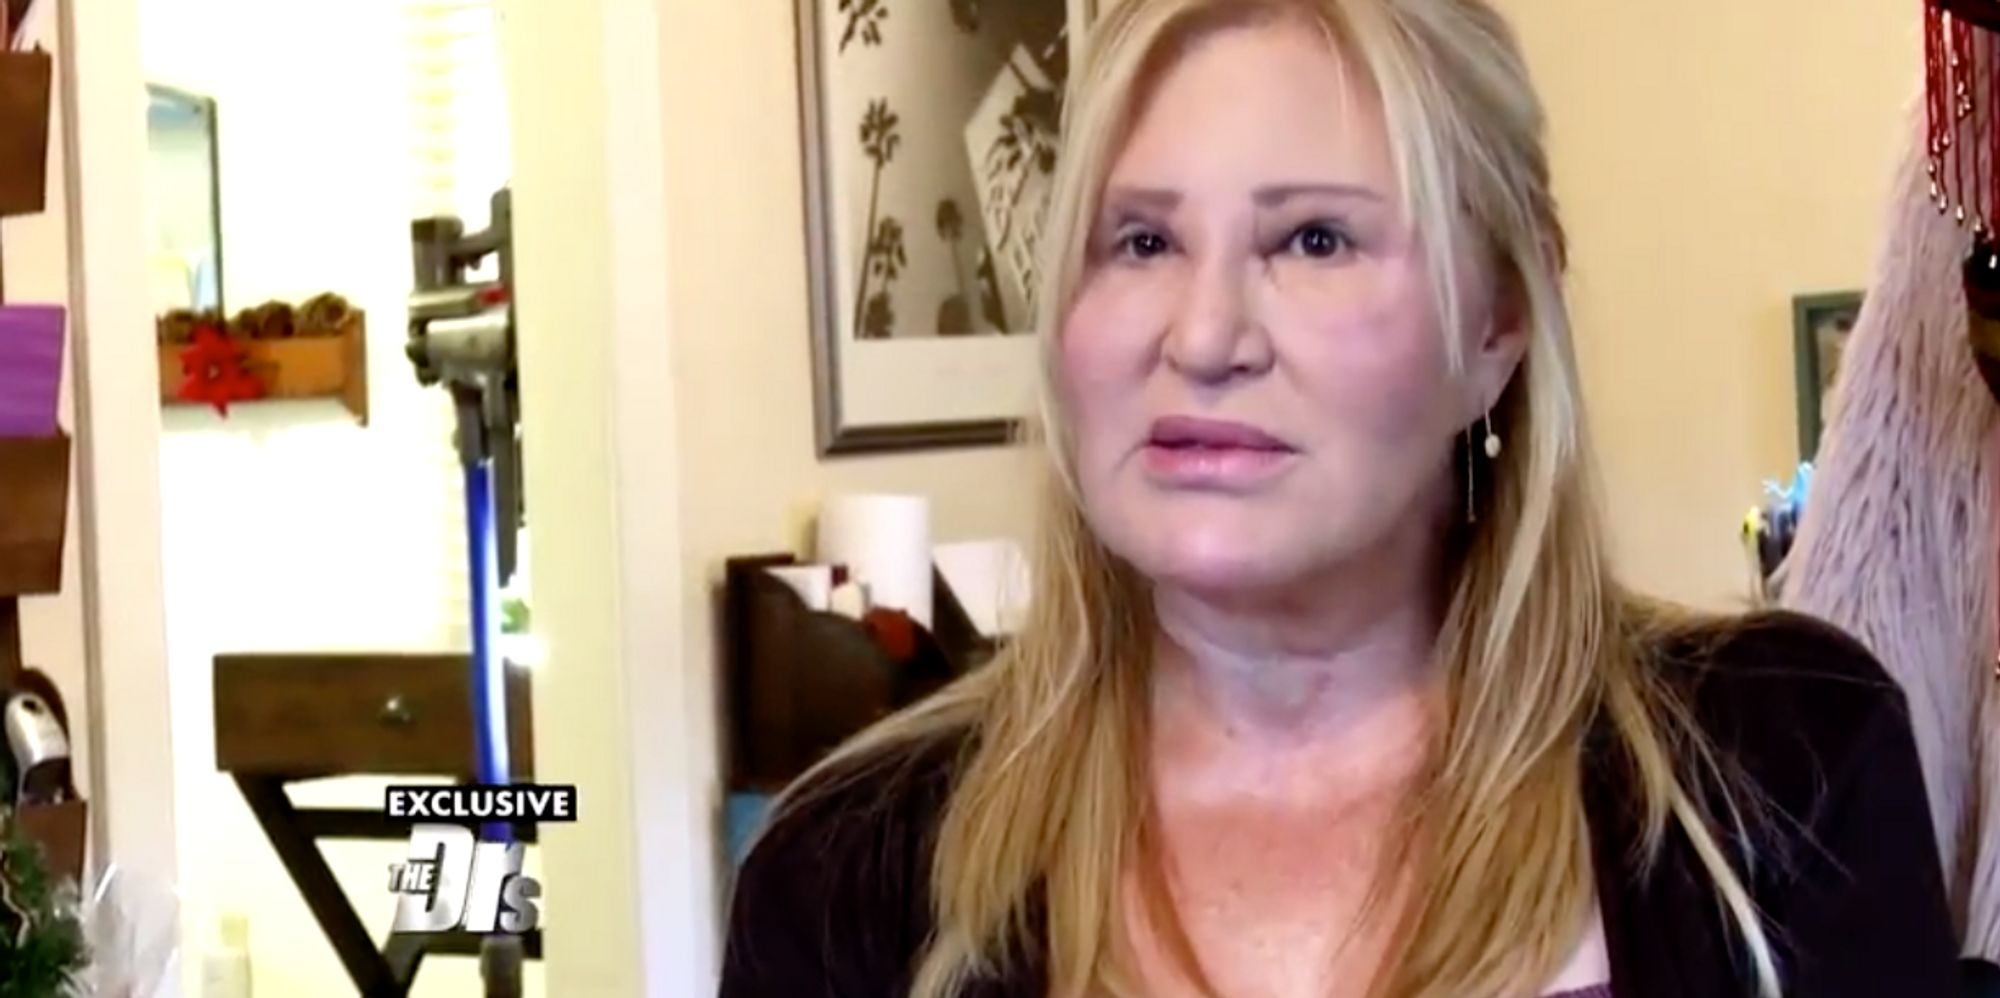 Woman Shares Cosmetic Surgery Warning After Fillers Left